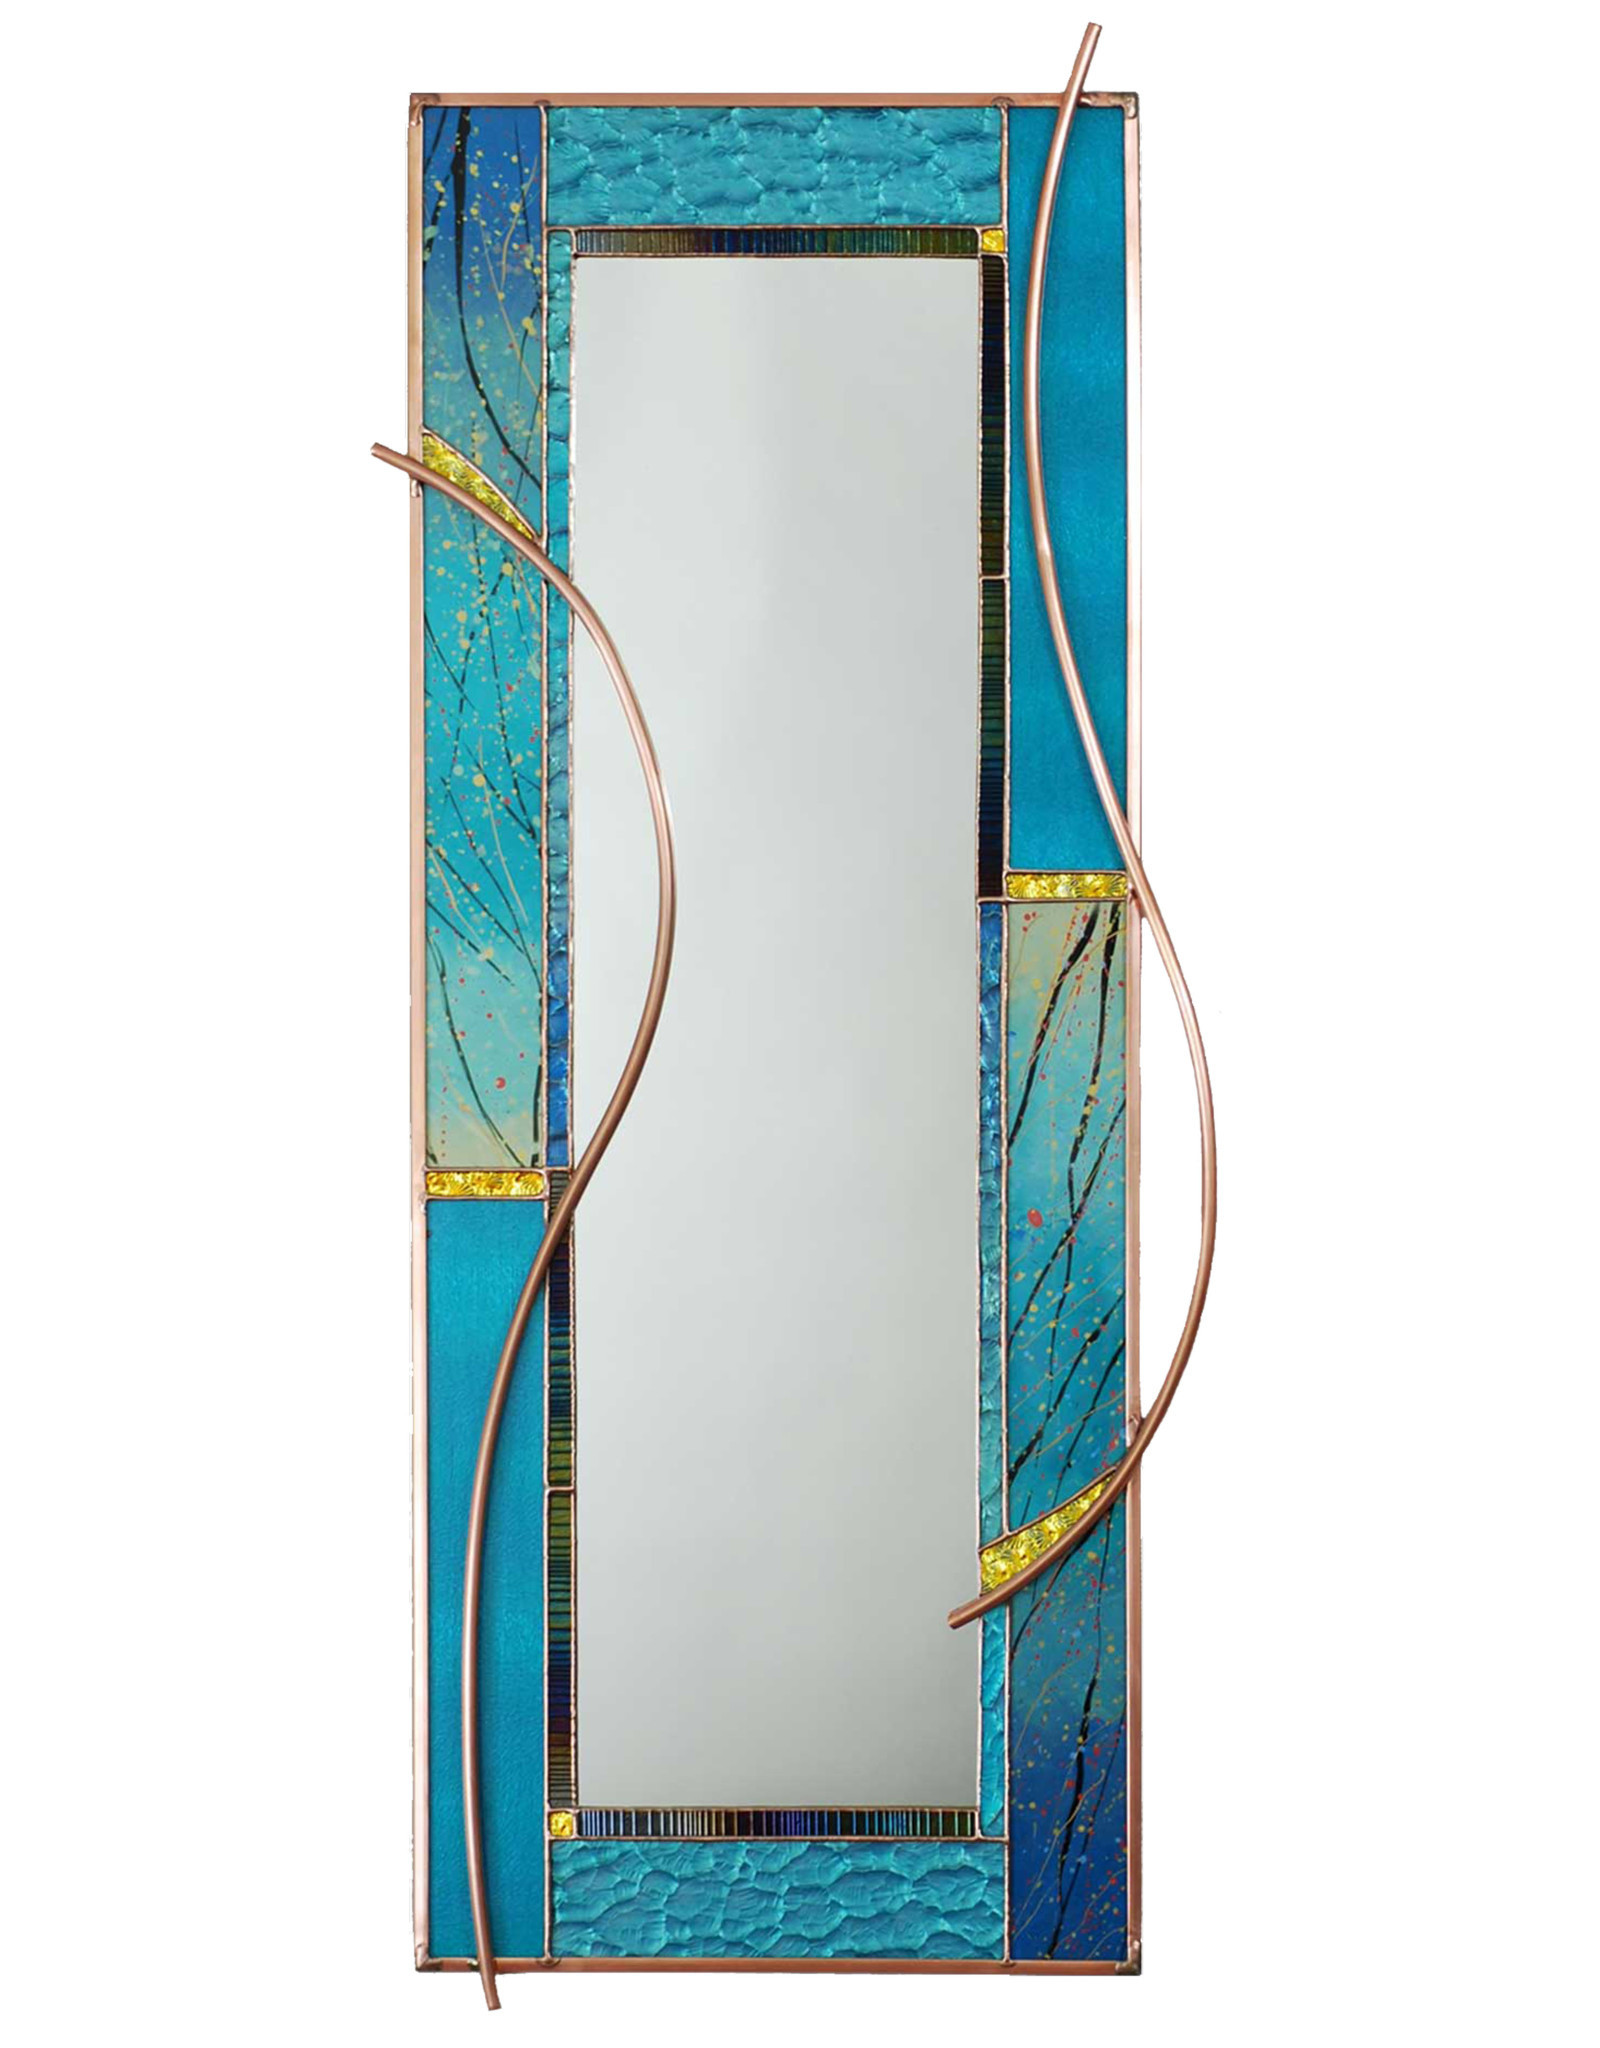 LIGHT IMAGES GLASS SEAGRASS MIRROR